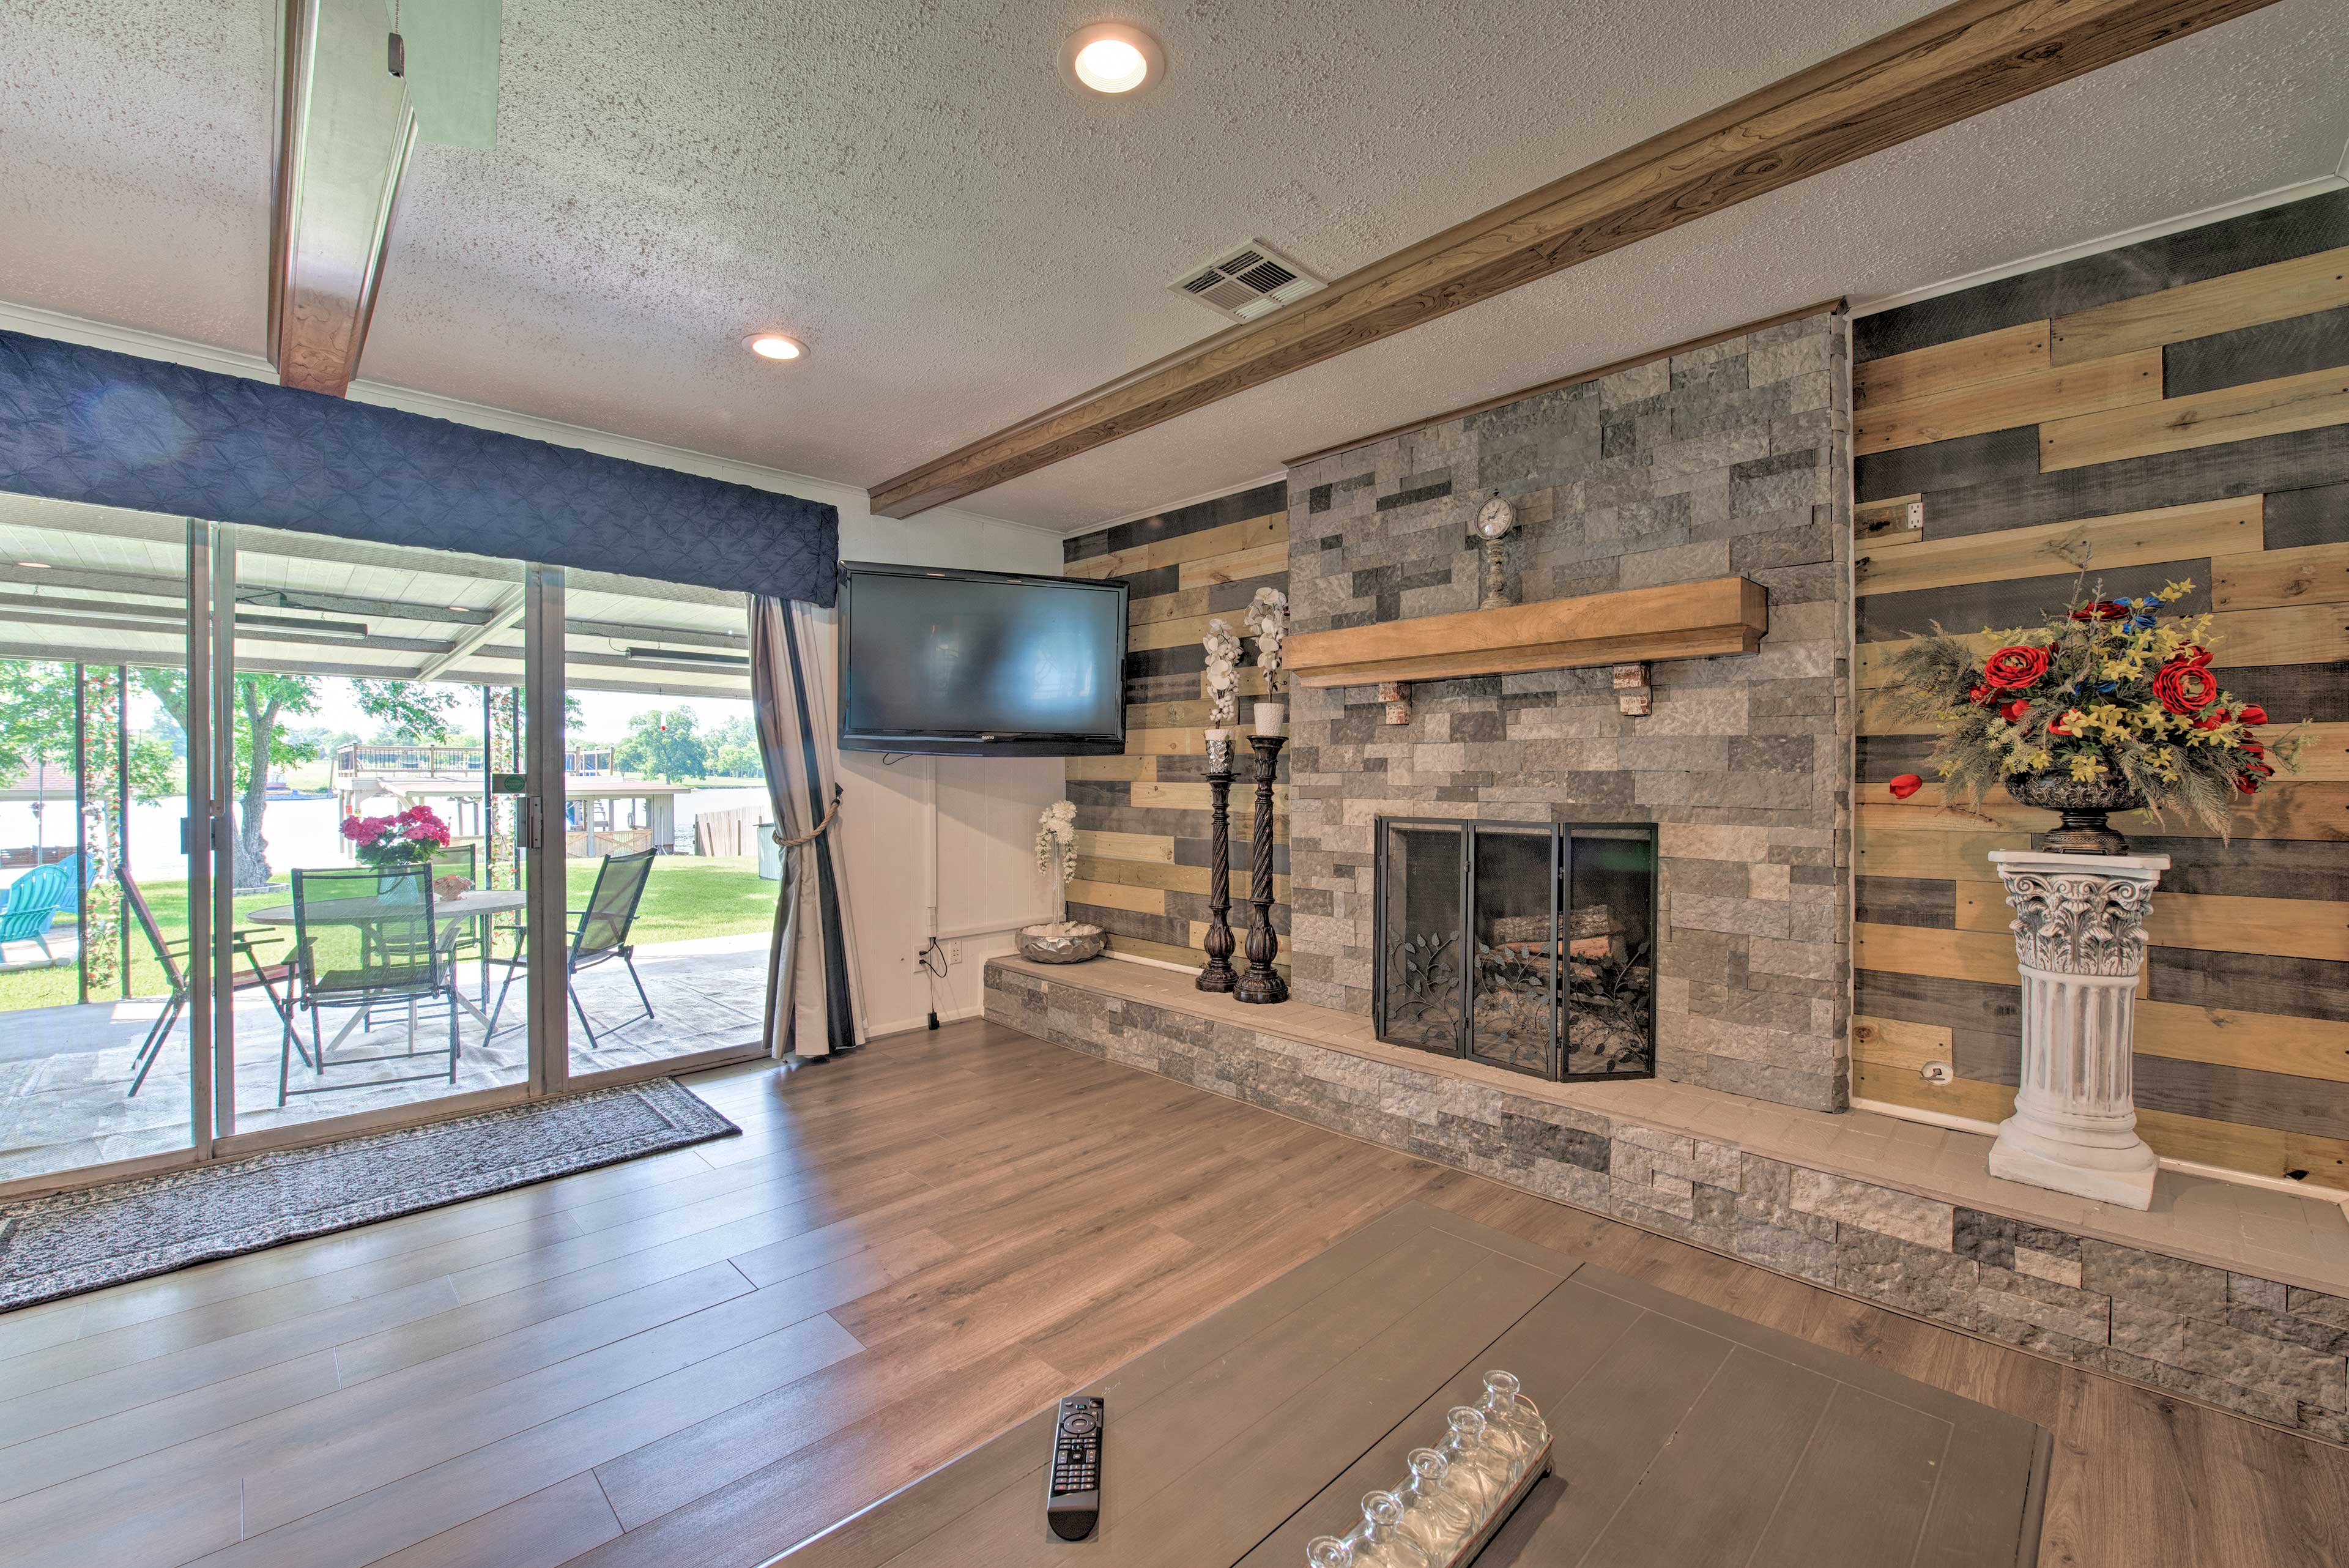 Step into this 4-bed, 2-bath vacation rental home on Lake Conroe.